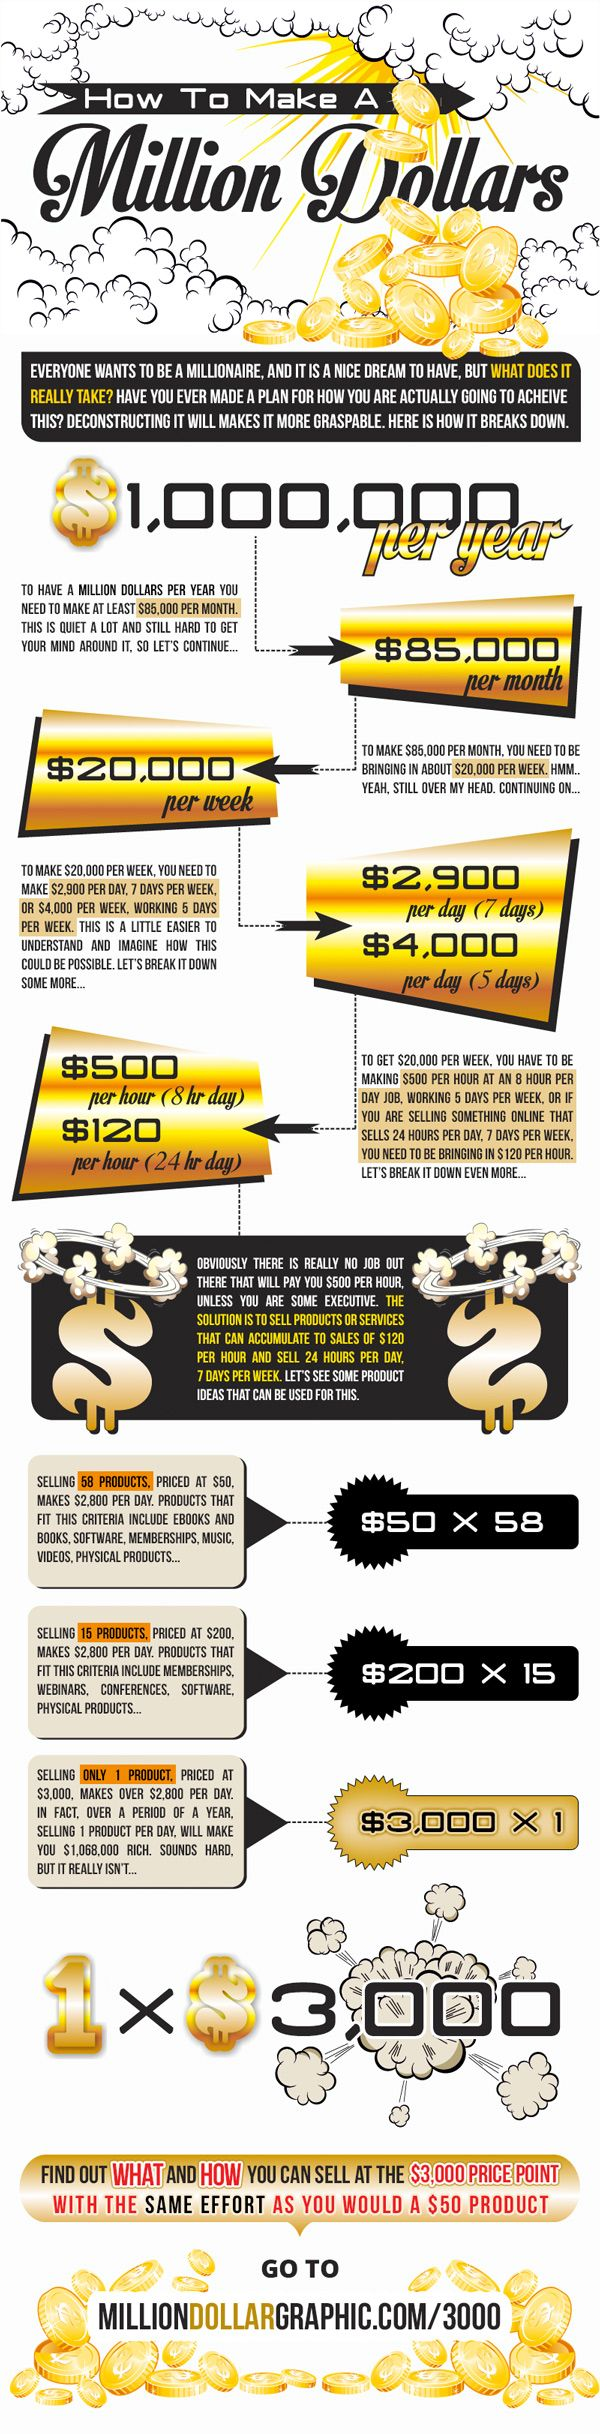 How to make a million dollars, infographic